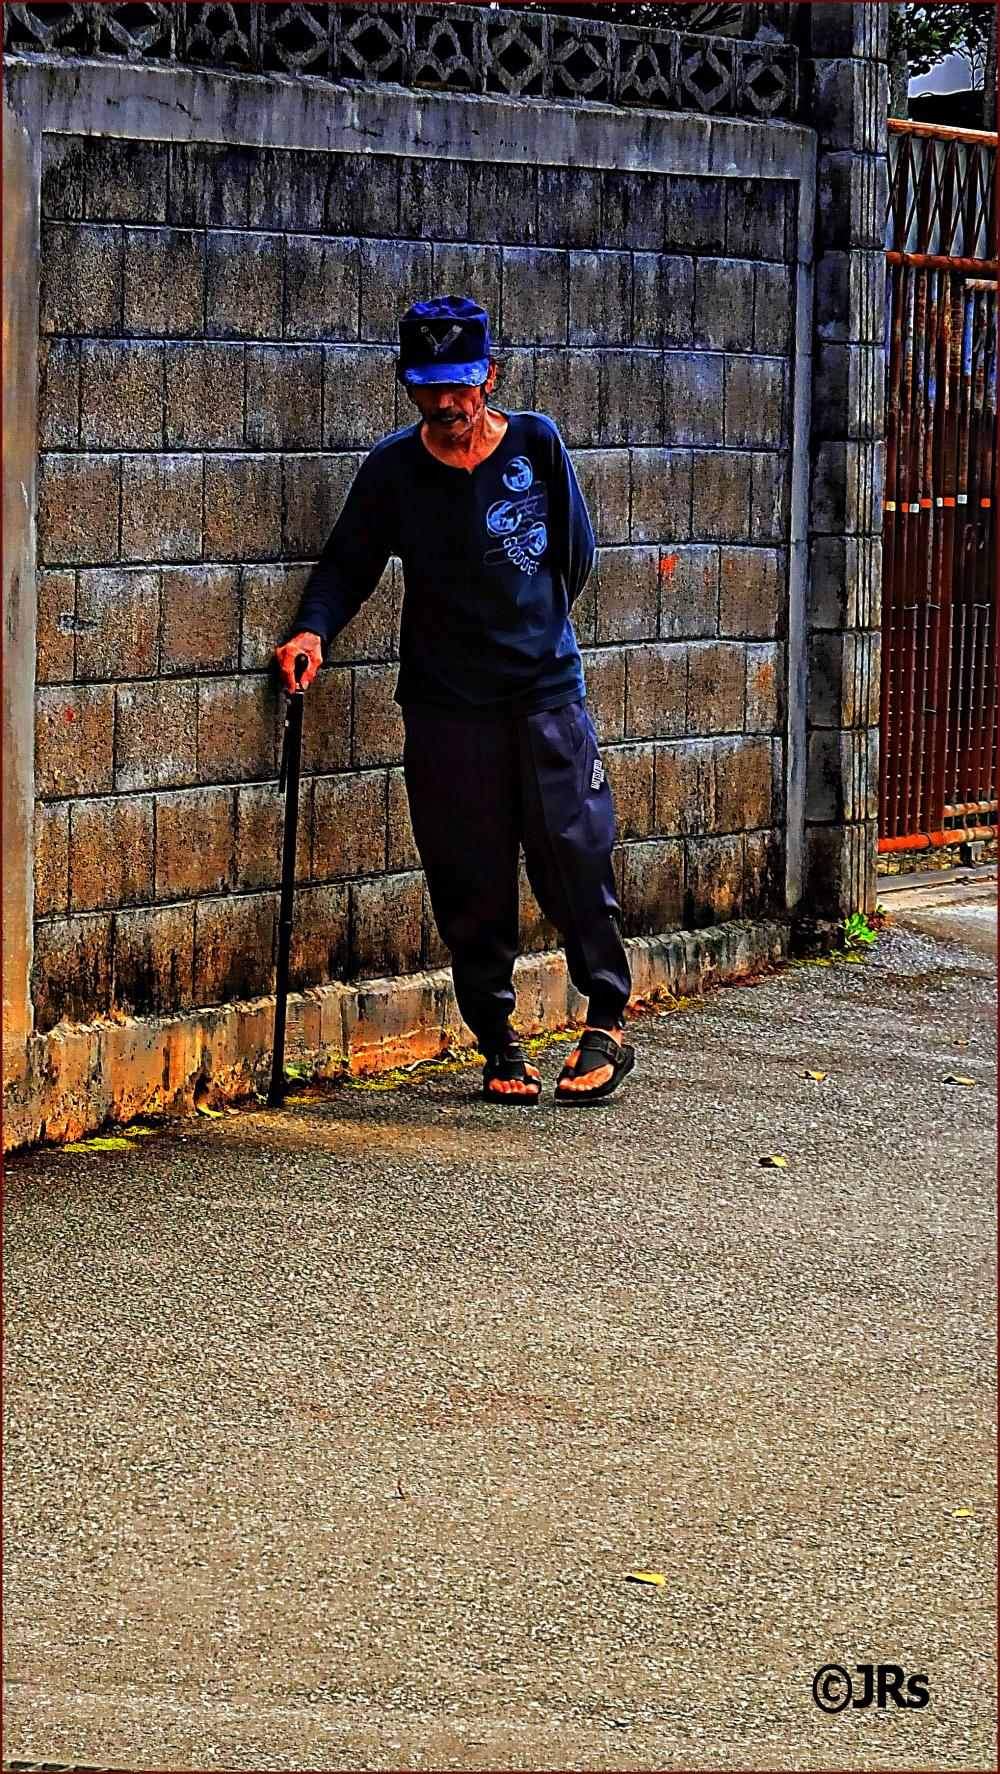 This disabled man walks every evening.